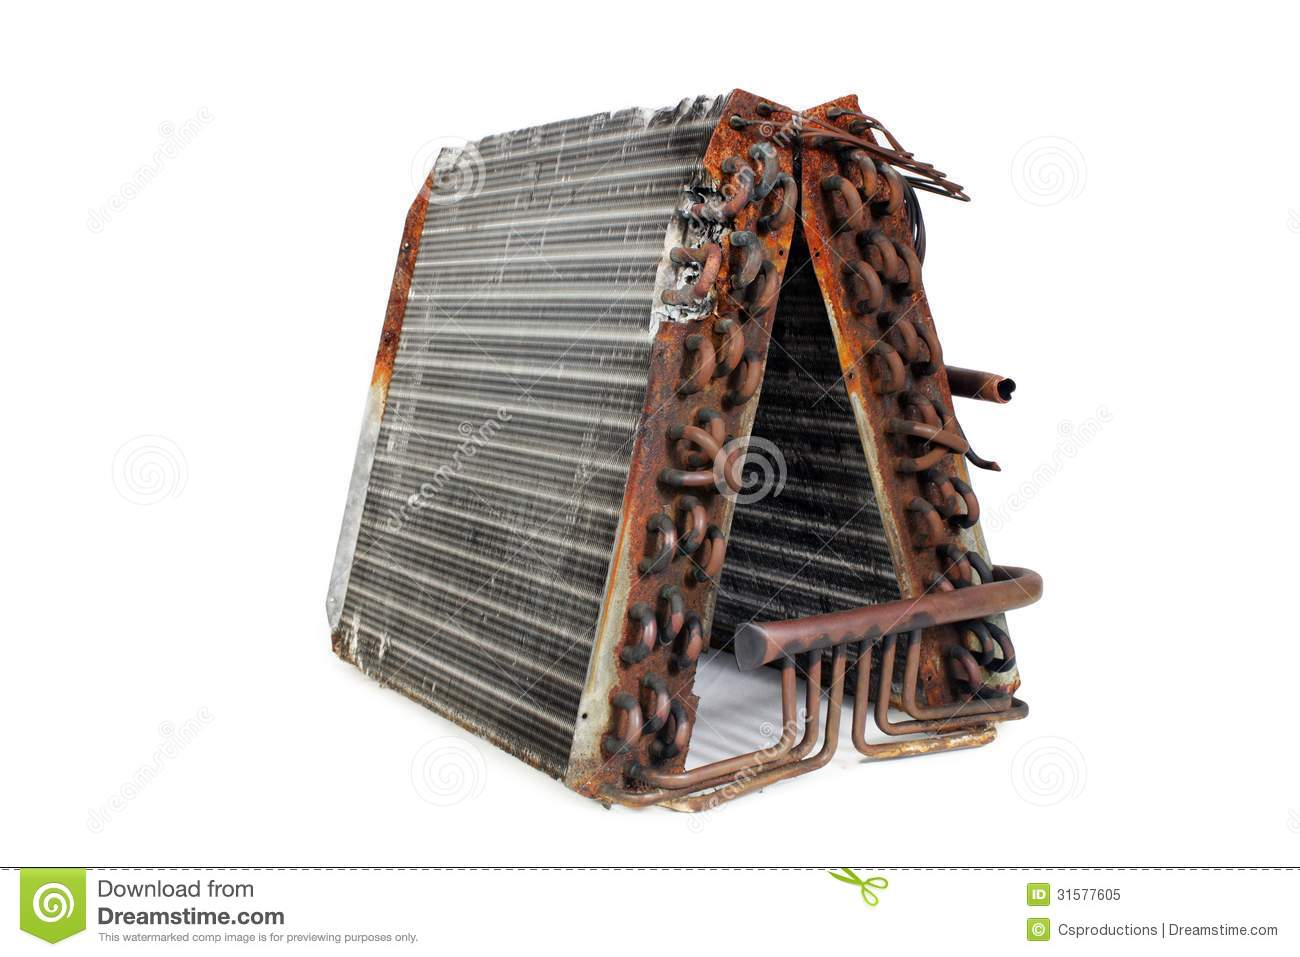 old evaporator coil front angle frame taken ton residential r straight capillary system 31577605